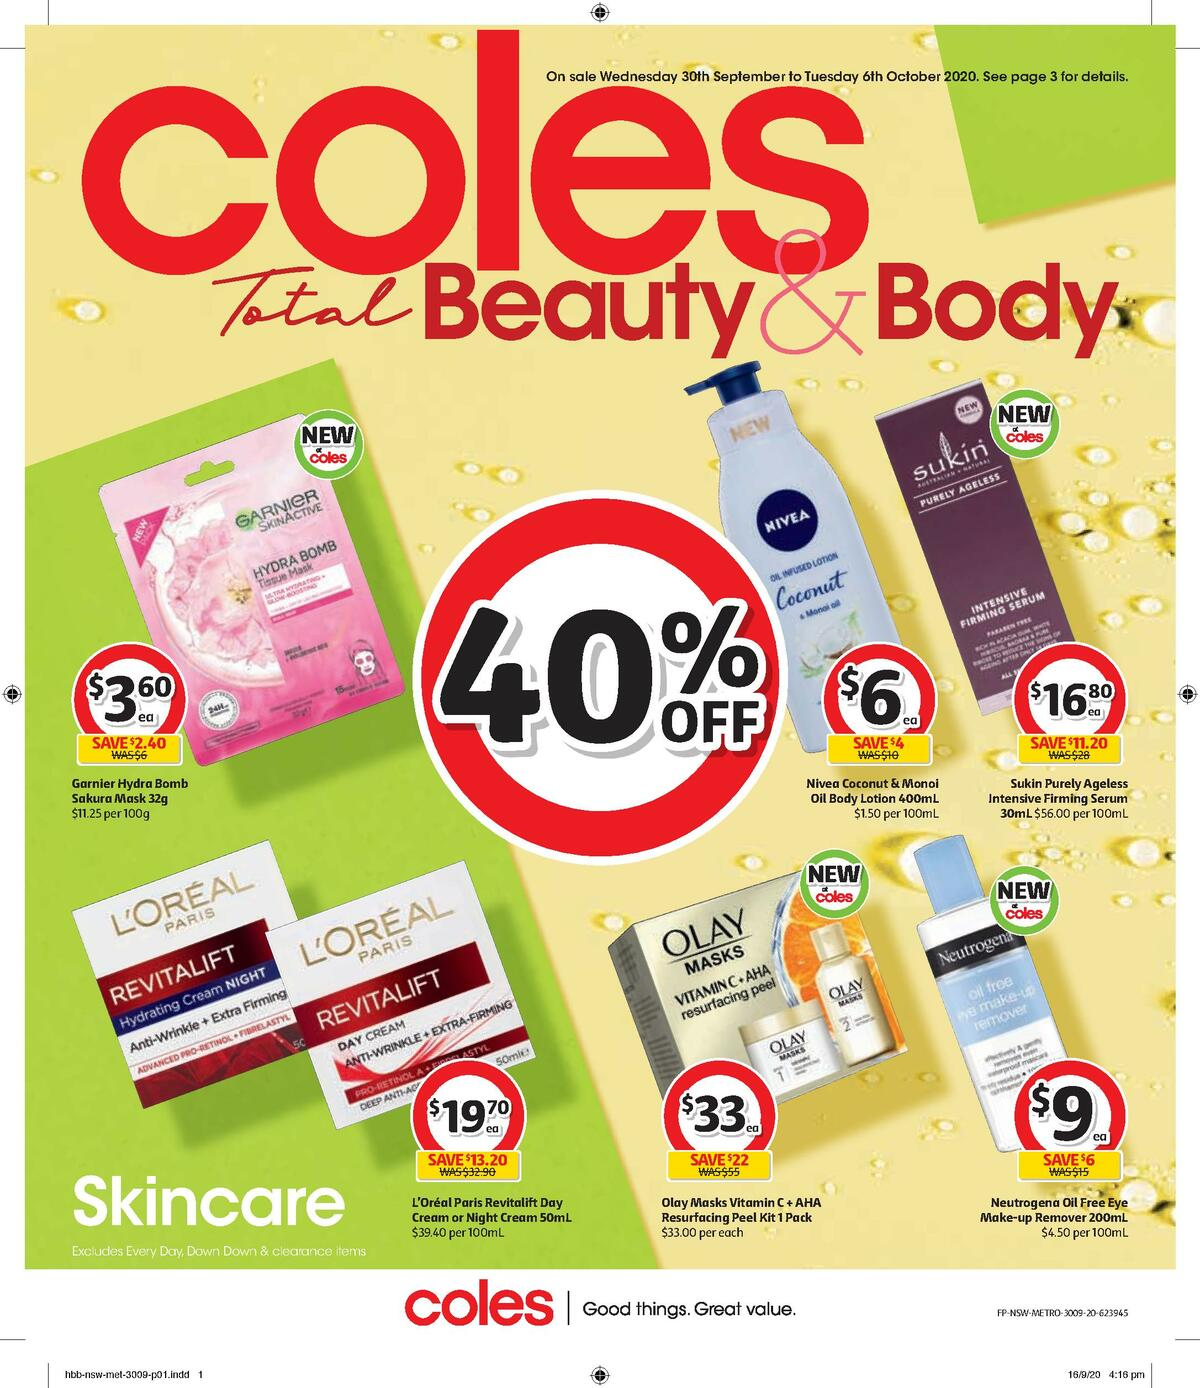 Coles Health & Beauty Catalogues from September 30